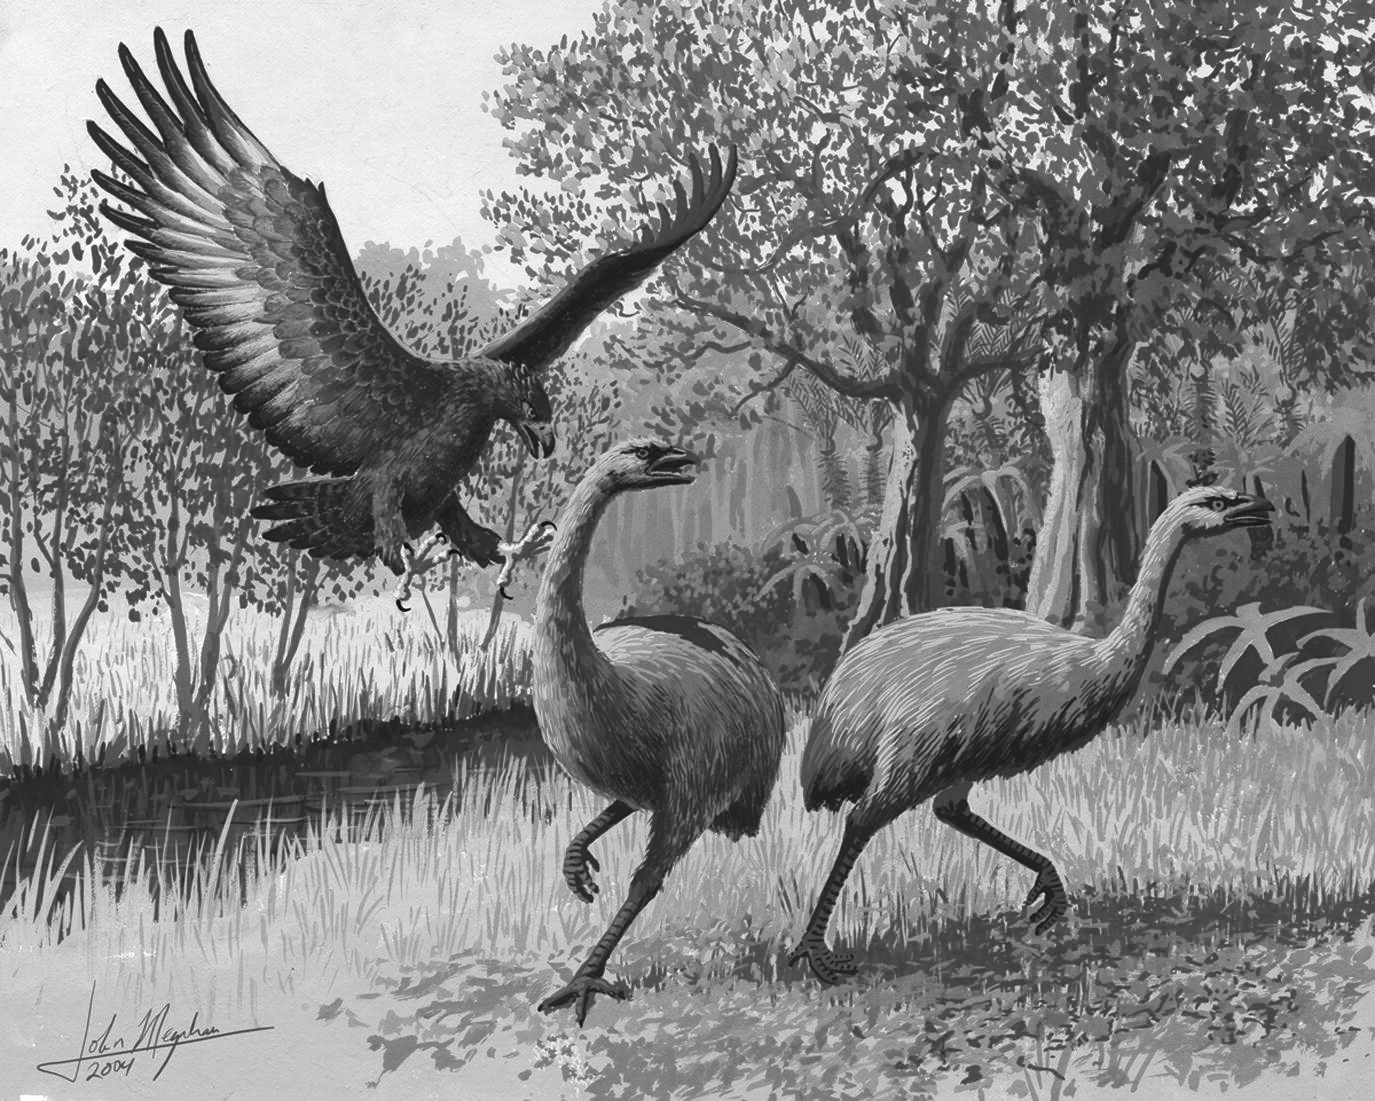 The Moa bird of New Zealand. (cfzaustralia.com)